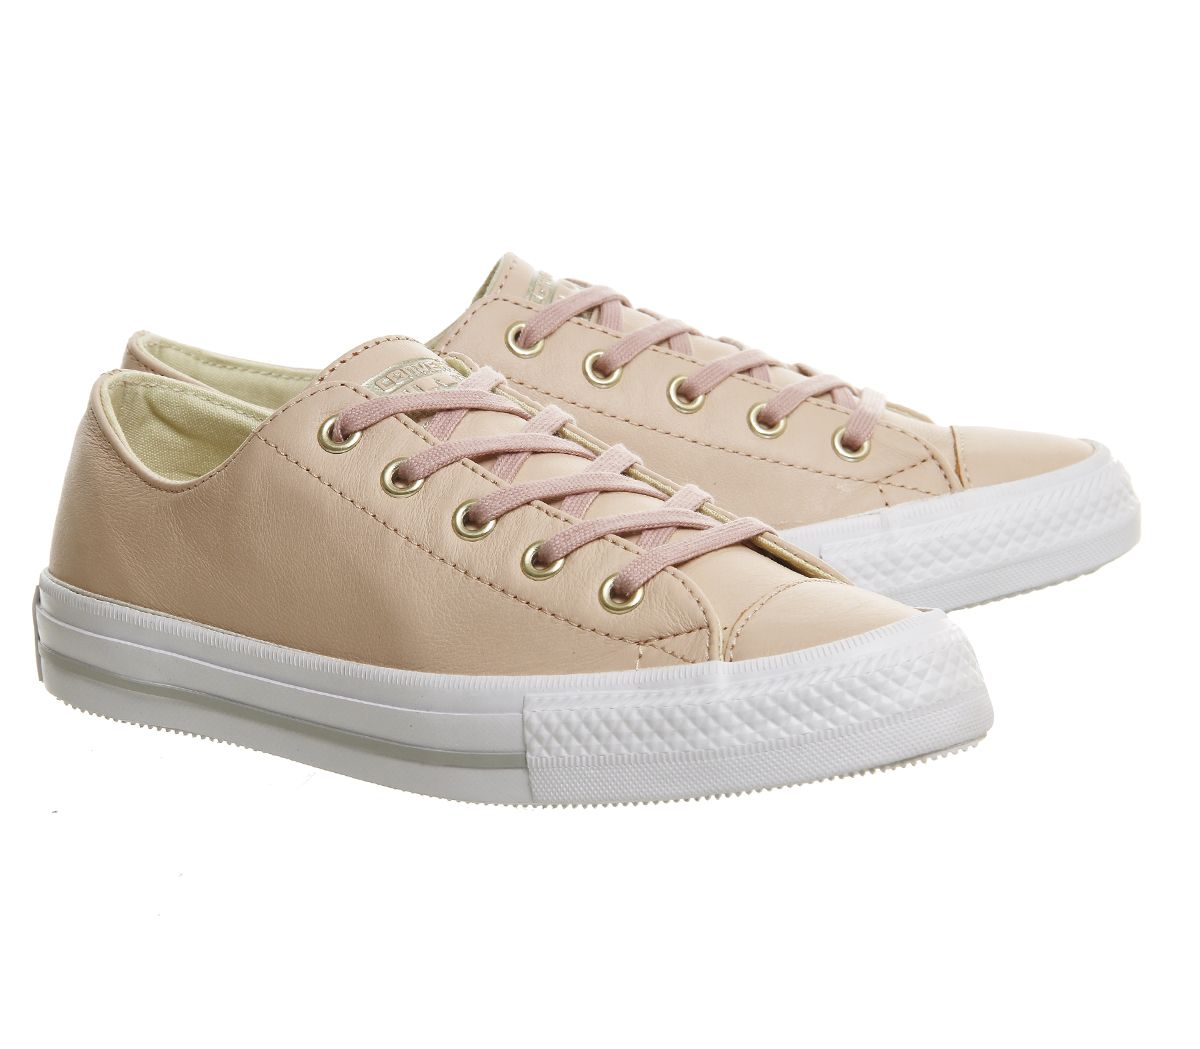 Converse Ctas Gemma Low Leather Trainers Evening Sand Gold - Hers trainers